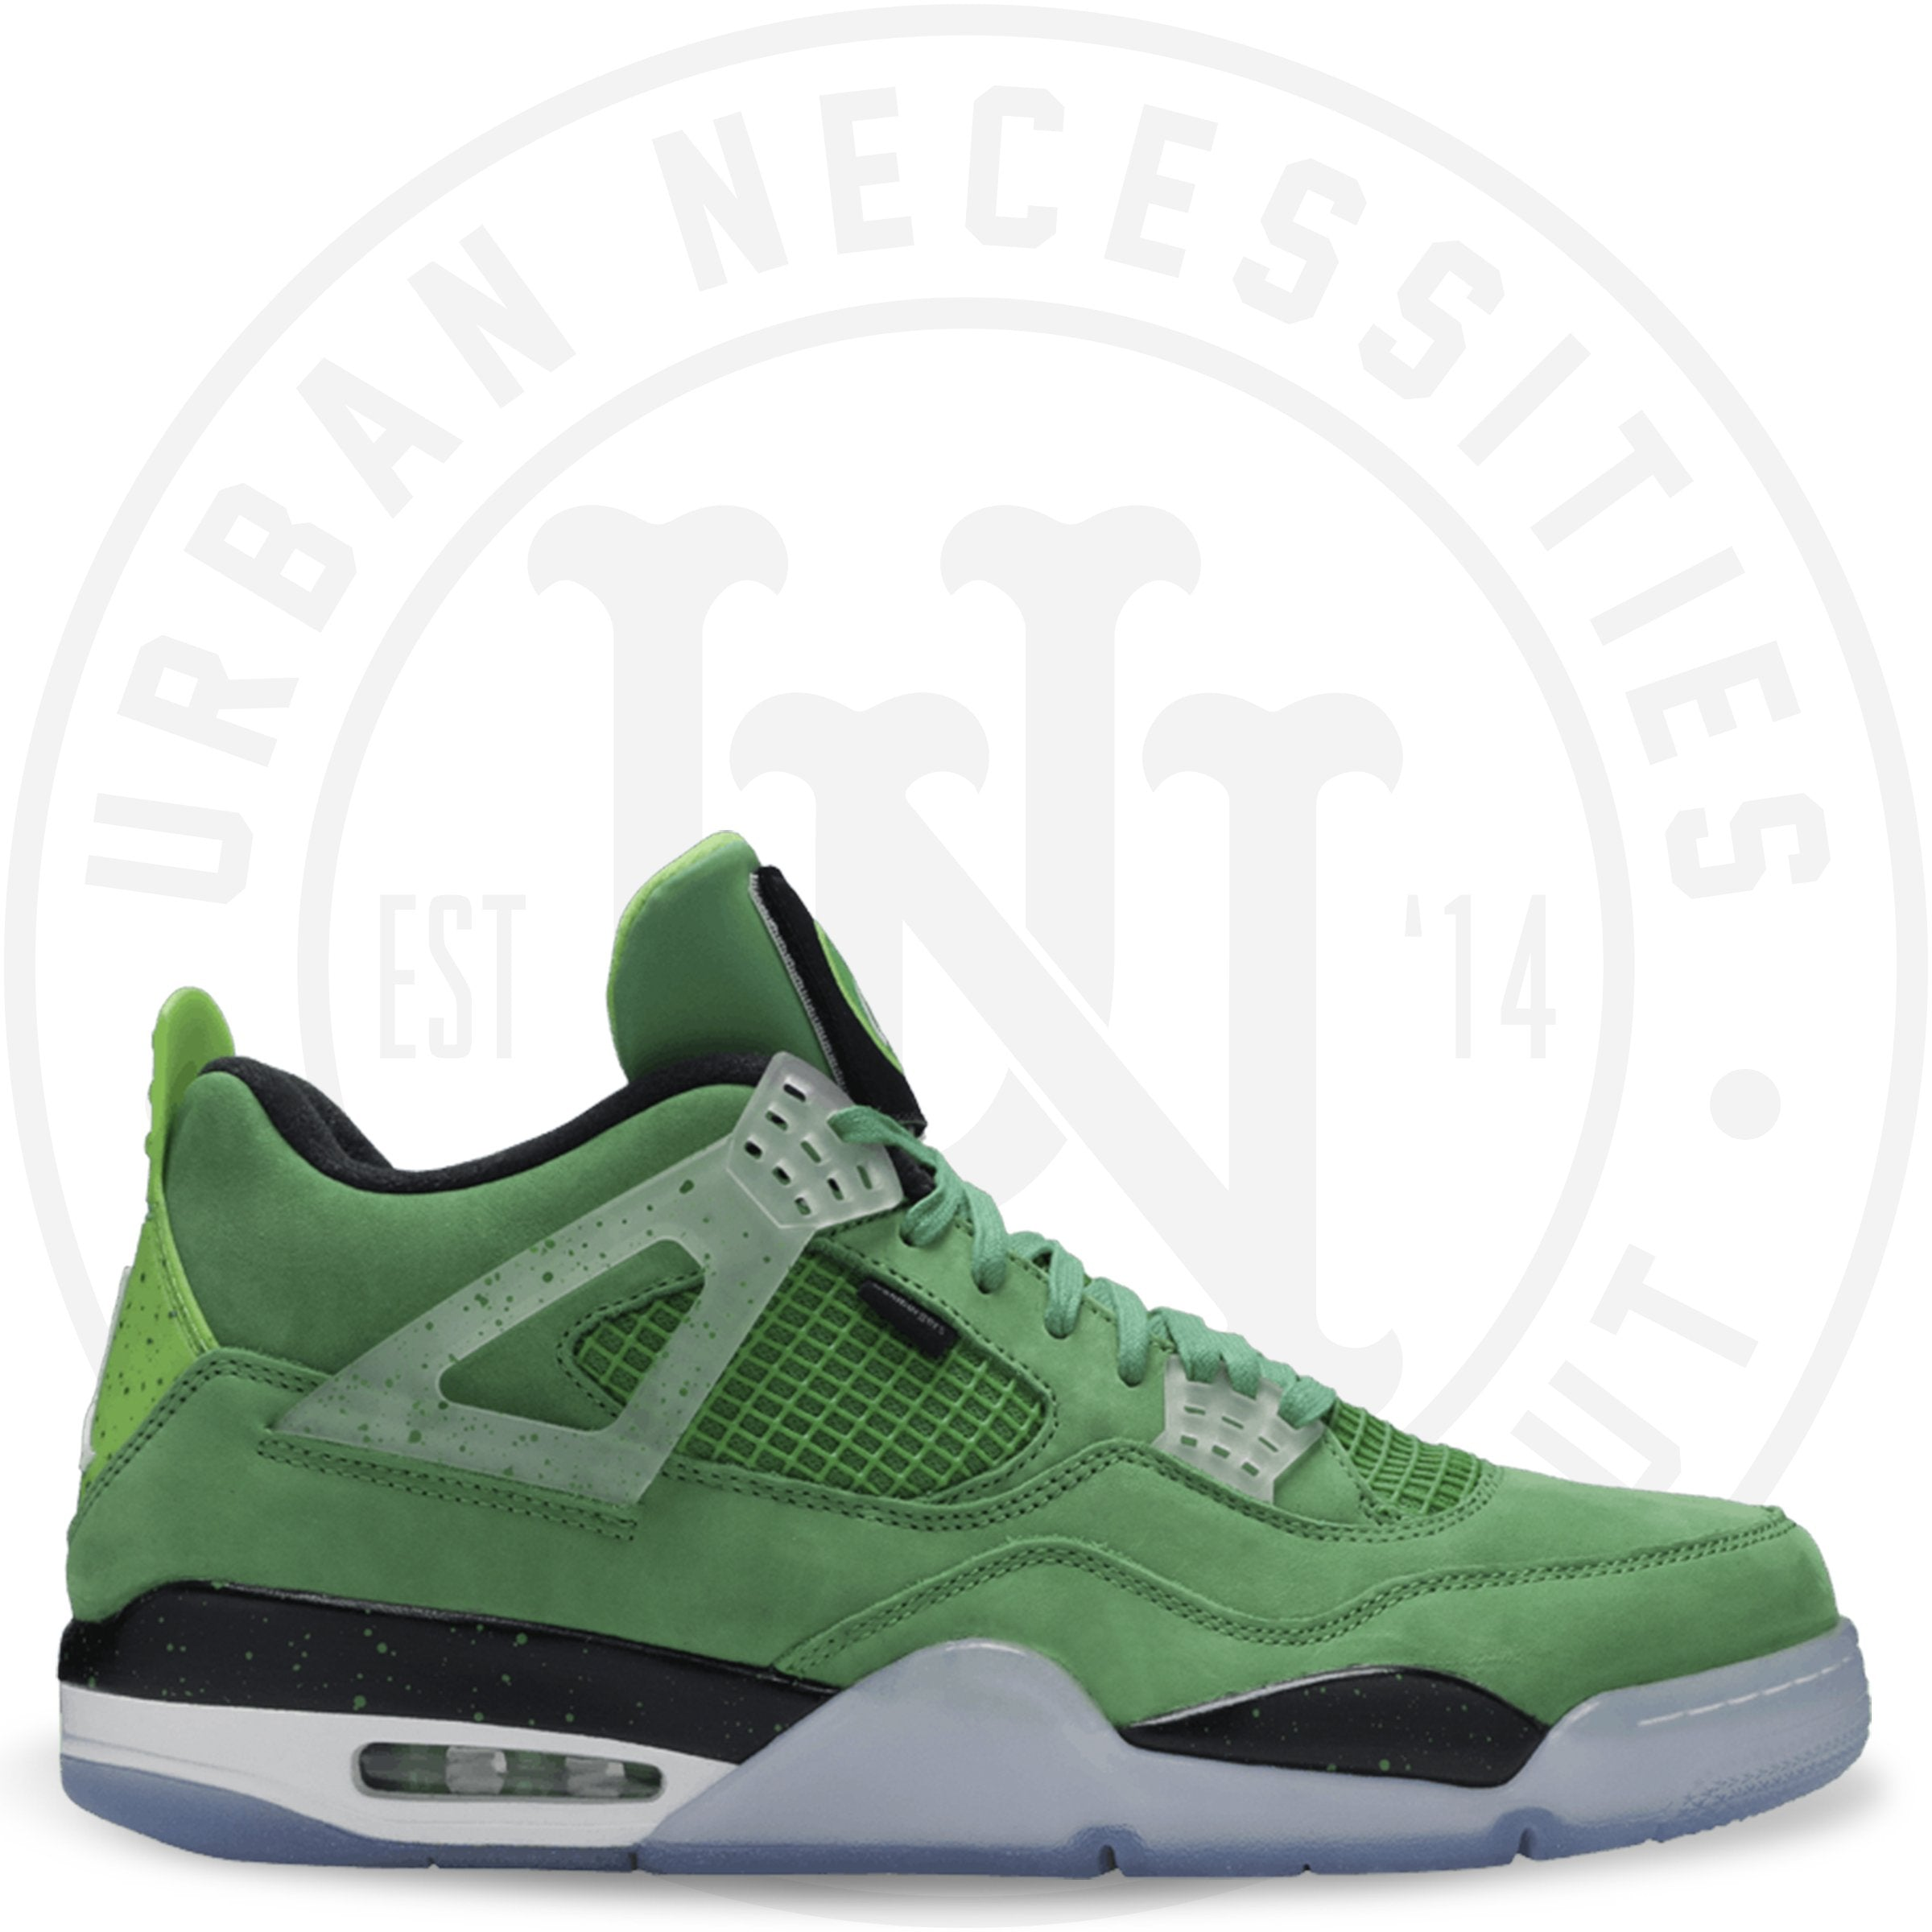 best authentic c63db 15c4b Air Jordan 4 Retro 'Wahlbergers' Apple Green/White -Mean Green-W AJ4-861426